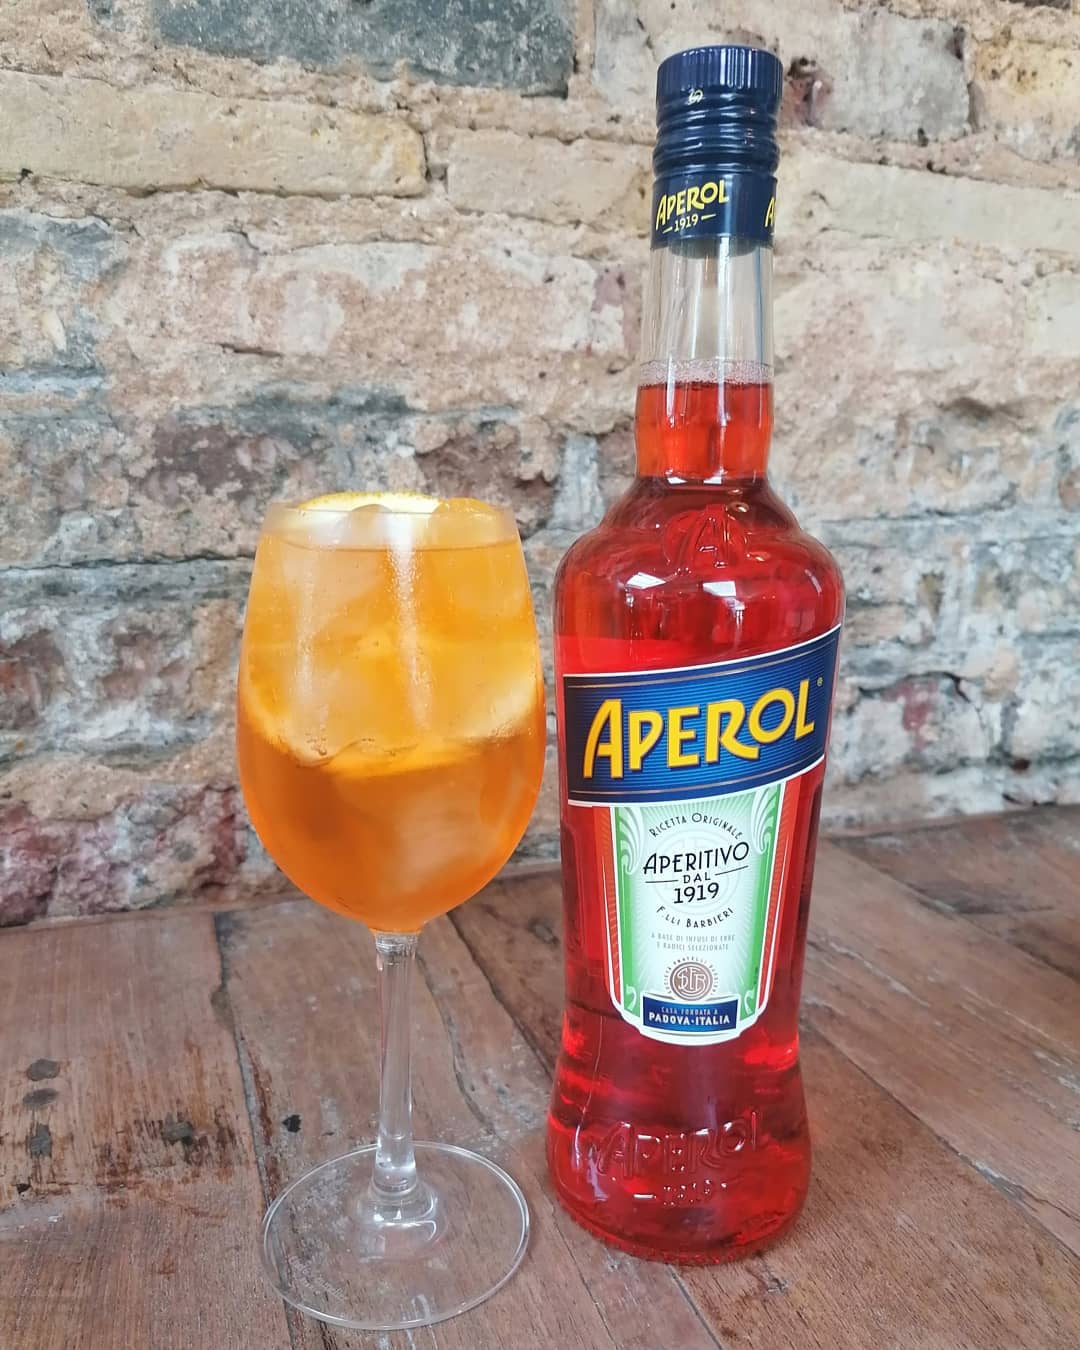 It's Friday, and we're in  a spritzy state of mind at the ship ⚓.  See y'all soon ⚓.   #aperolspritz #aperol #hackney #clapton #morninglane #cocktails #londonist #pub #meetup #stokenewington #dalston #sun #happyfriday #eastlondon #local #drinks #homerton #drinkswithfriends #sunnyday #hackneylocal #hackneylife #aperoltime #hackneycentral #aperolspritztime #tgif